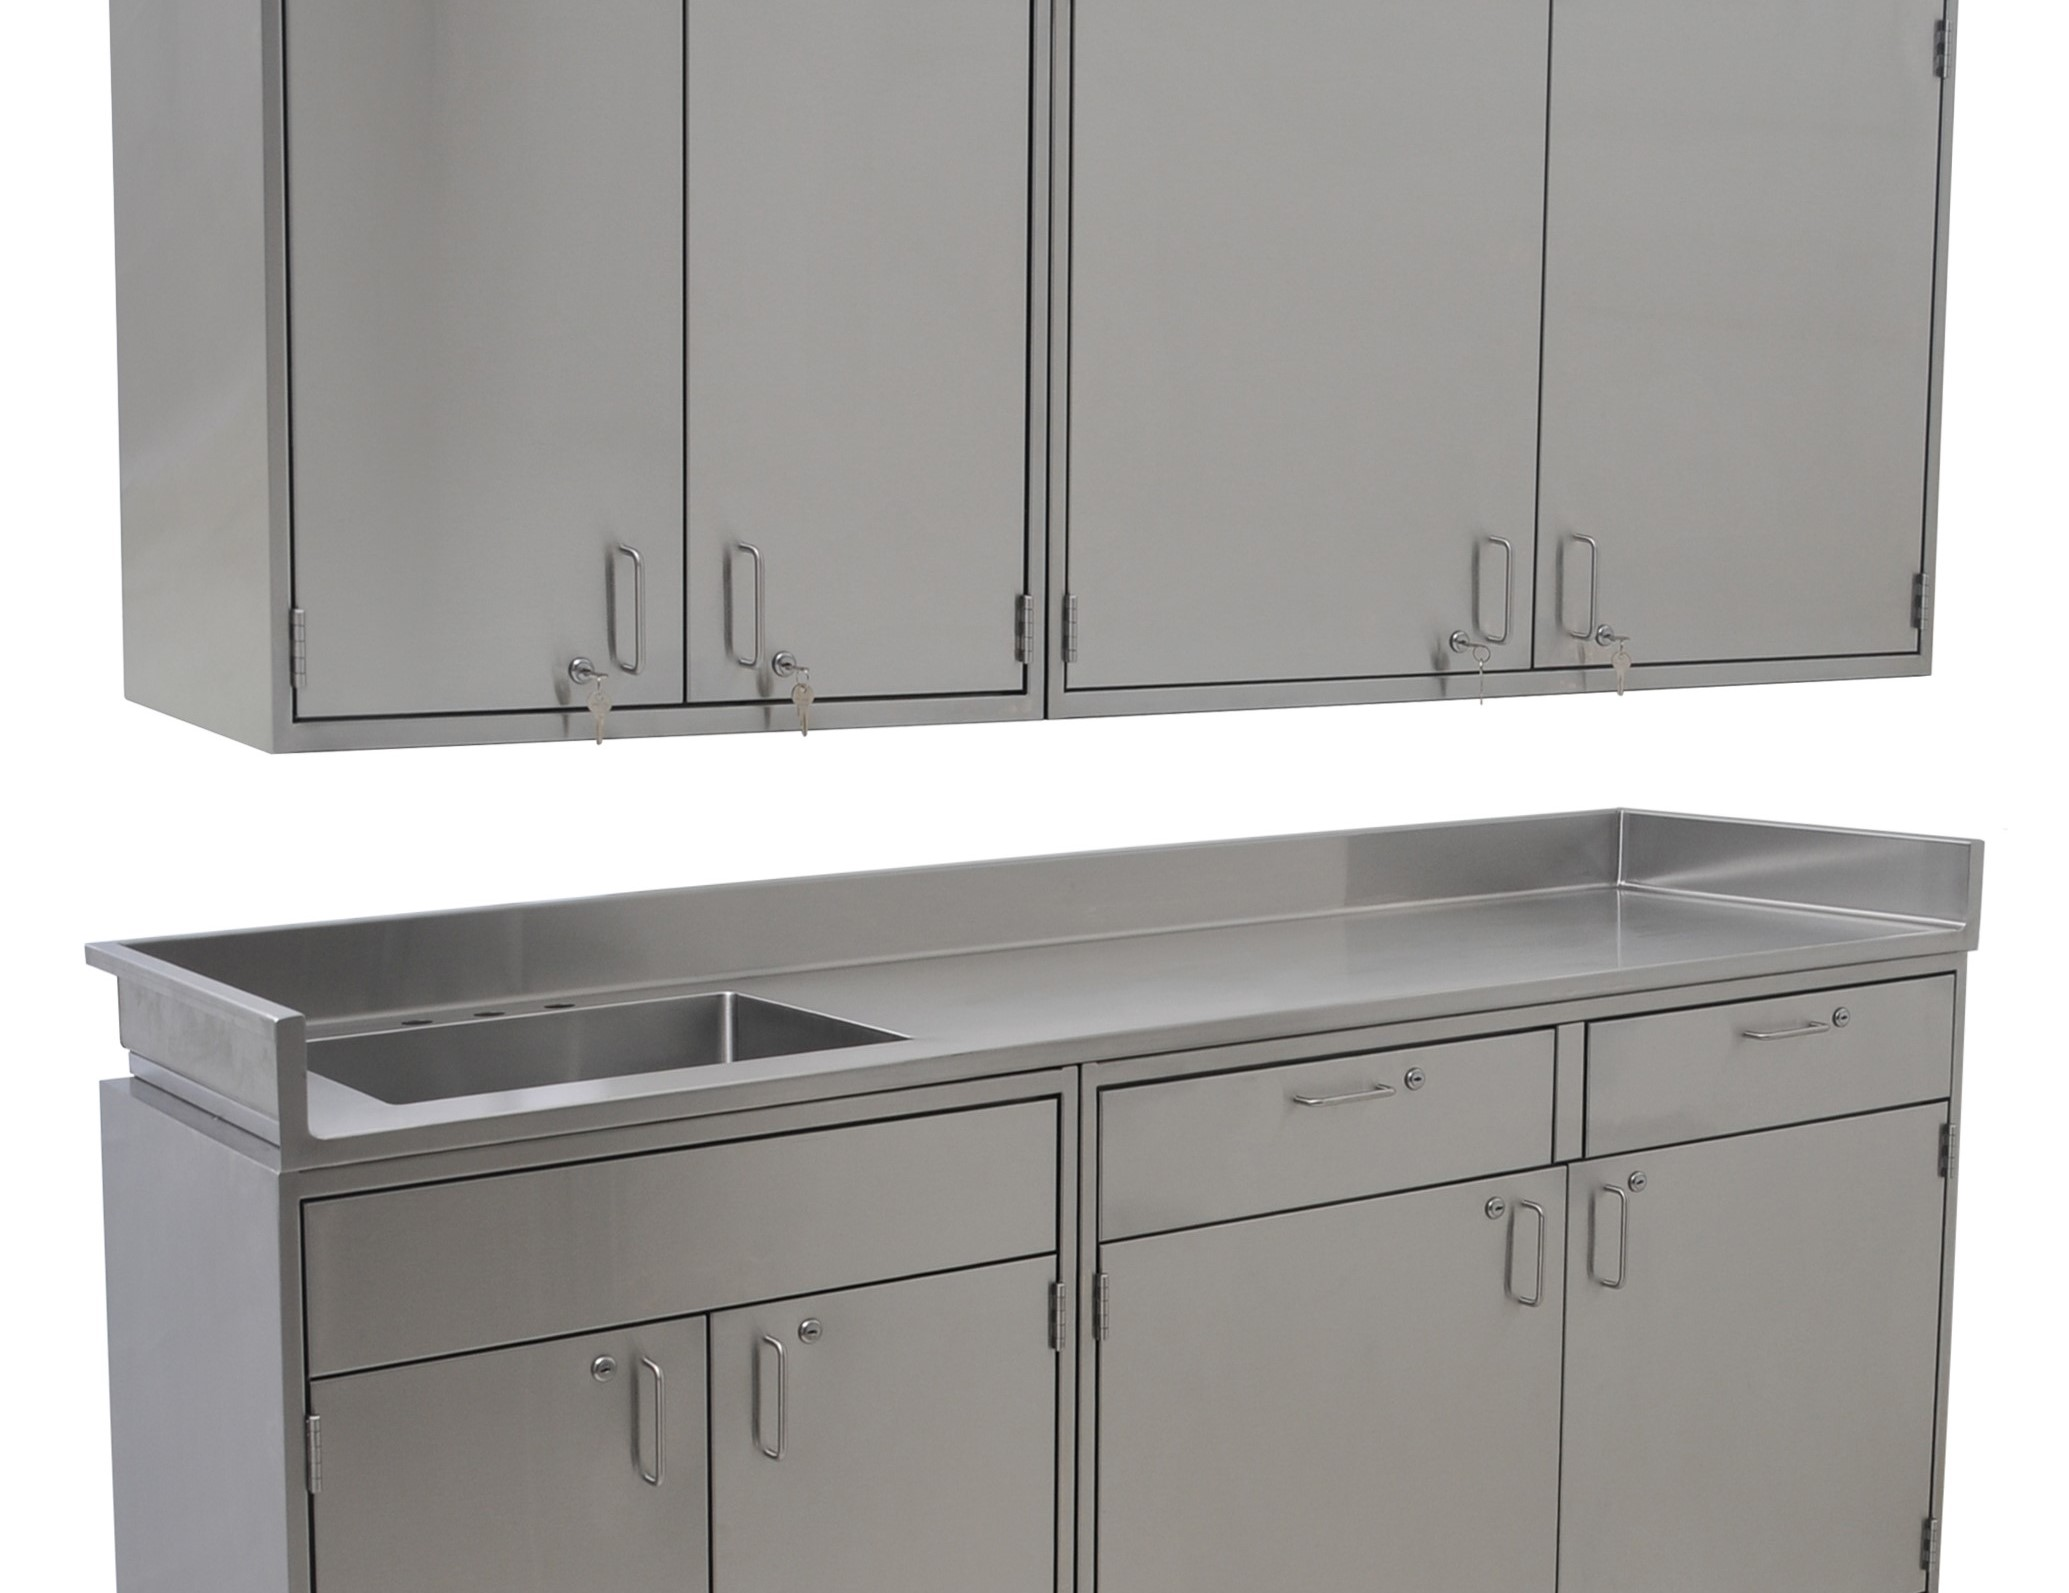 Eagle Stainless steel casework with wall and floor cabinets